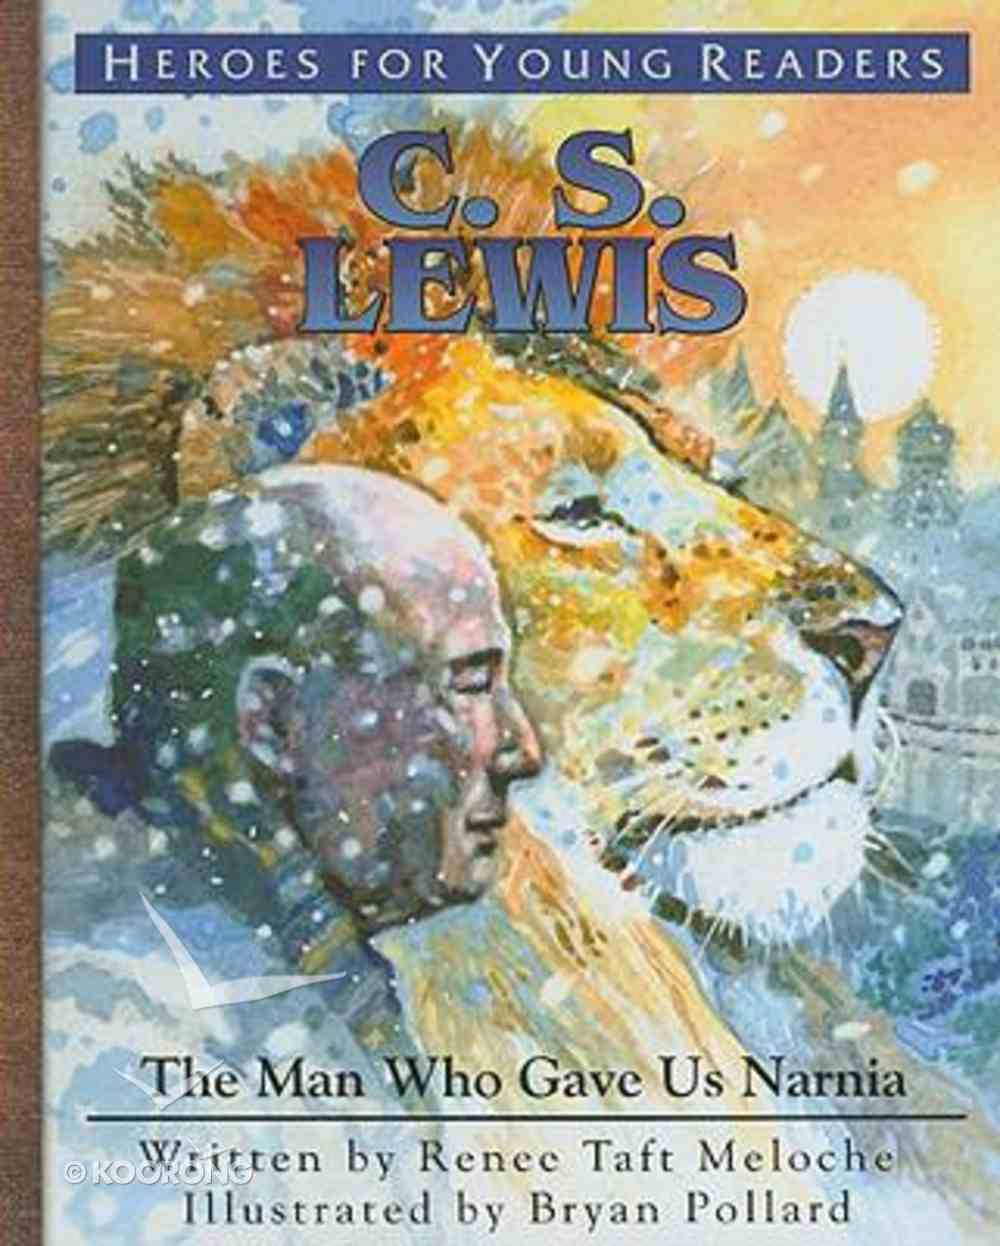 C.S. Lewis - the Man Who Gave Us Narnia (Heroes For Young Readers Series) Hardback